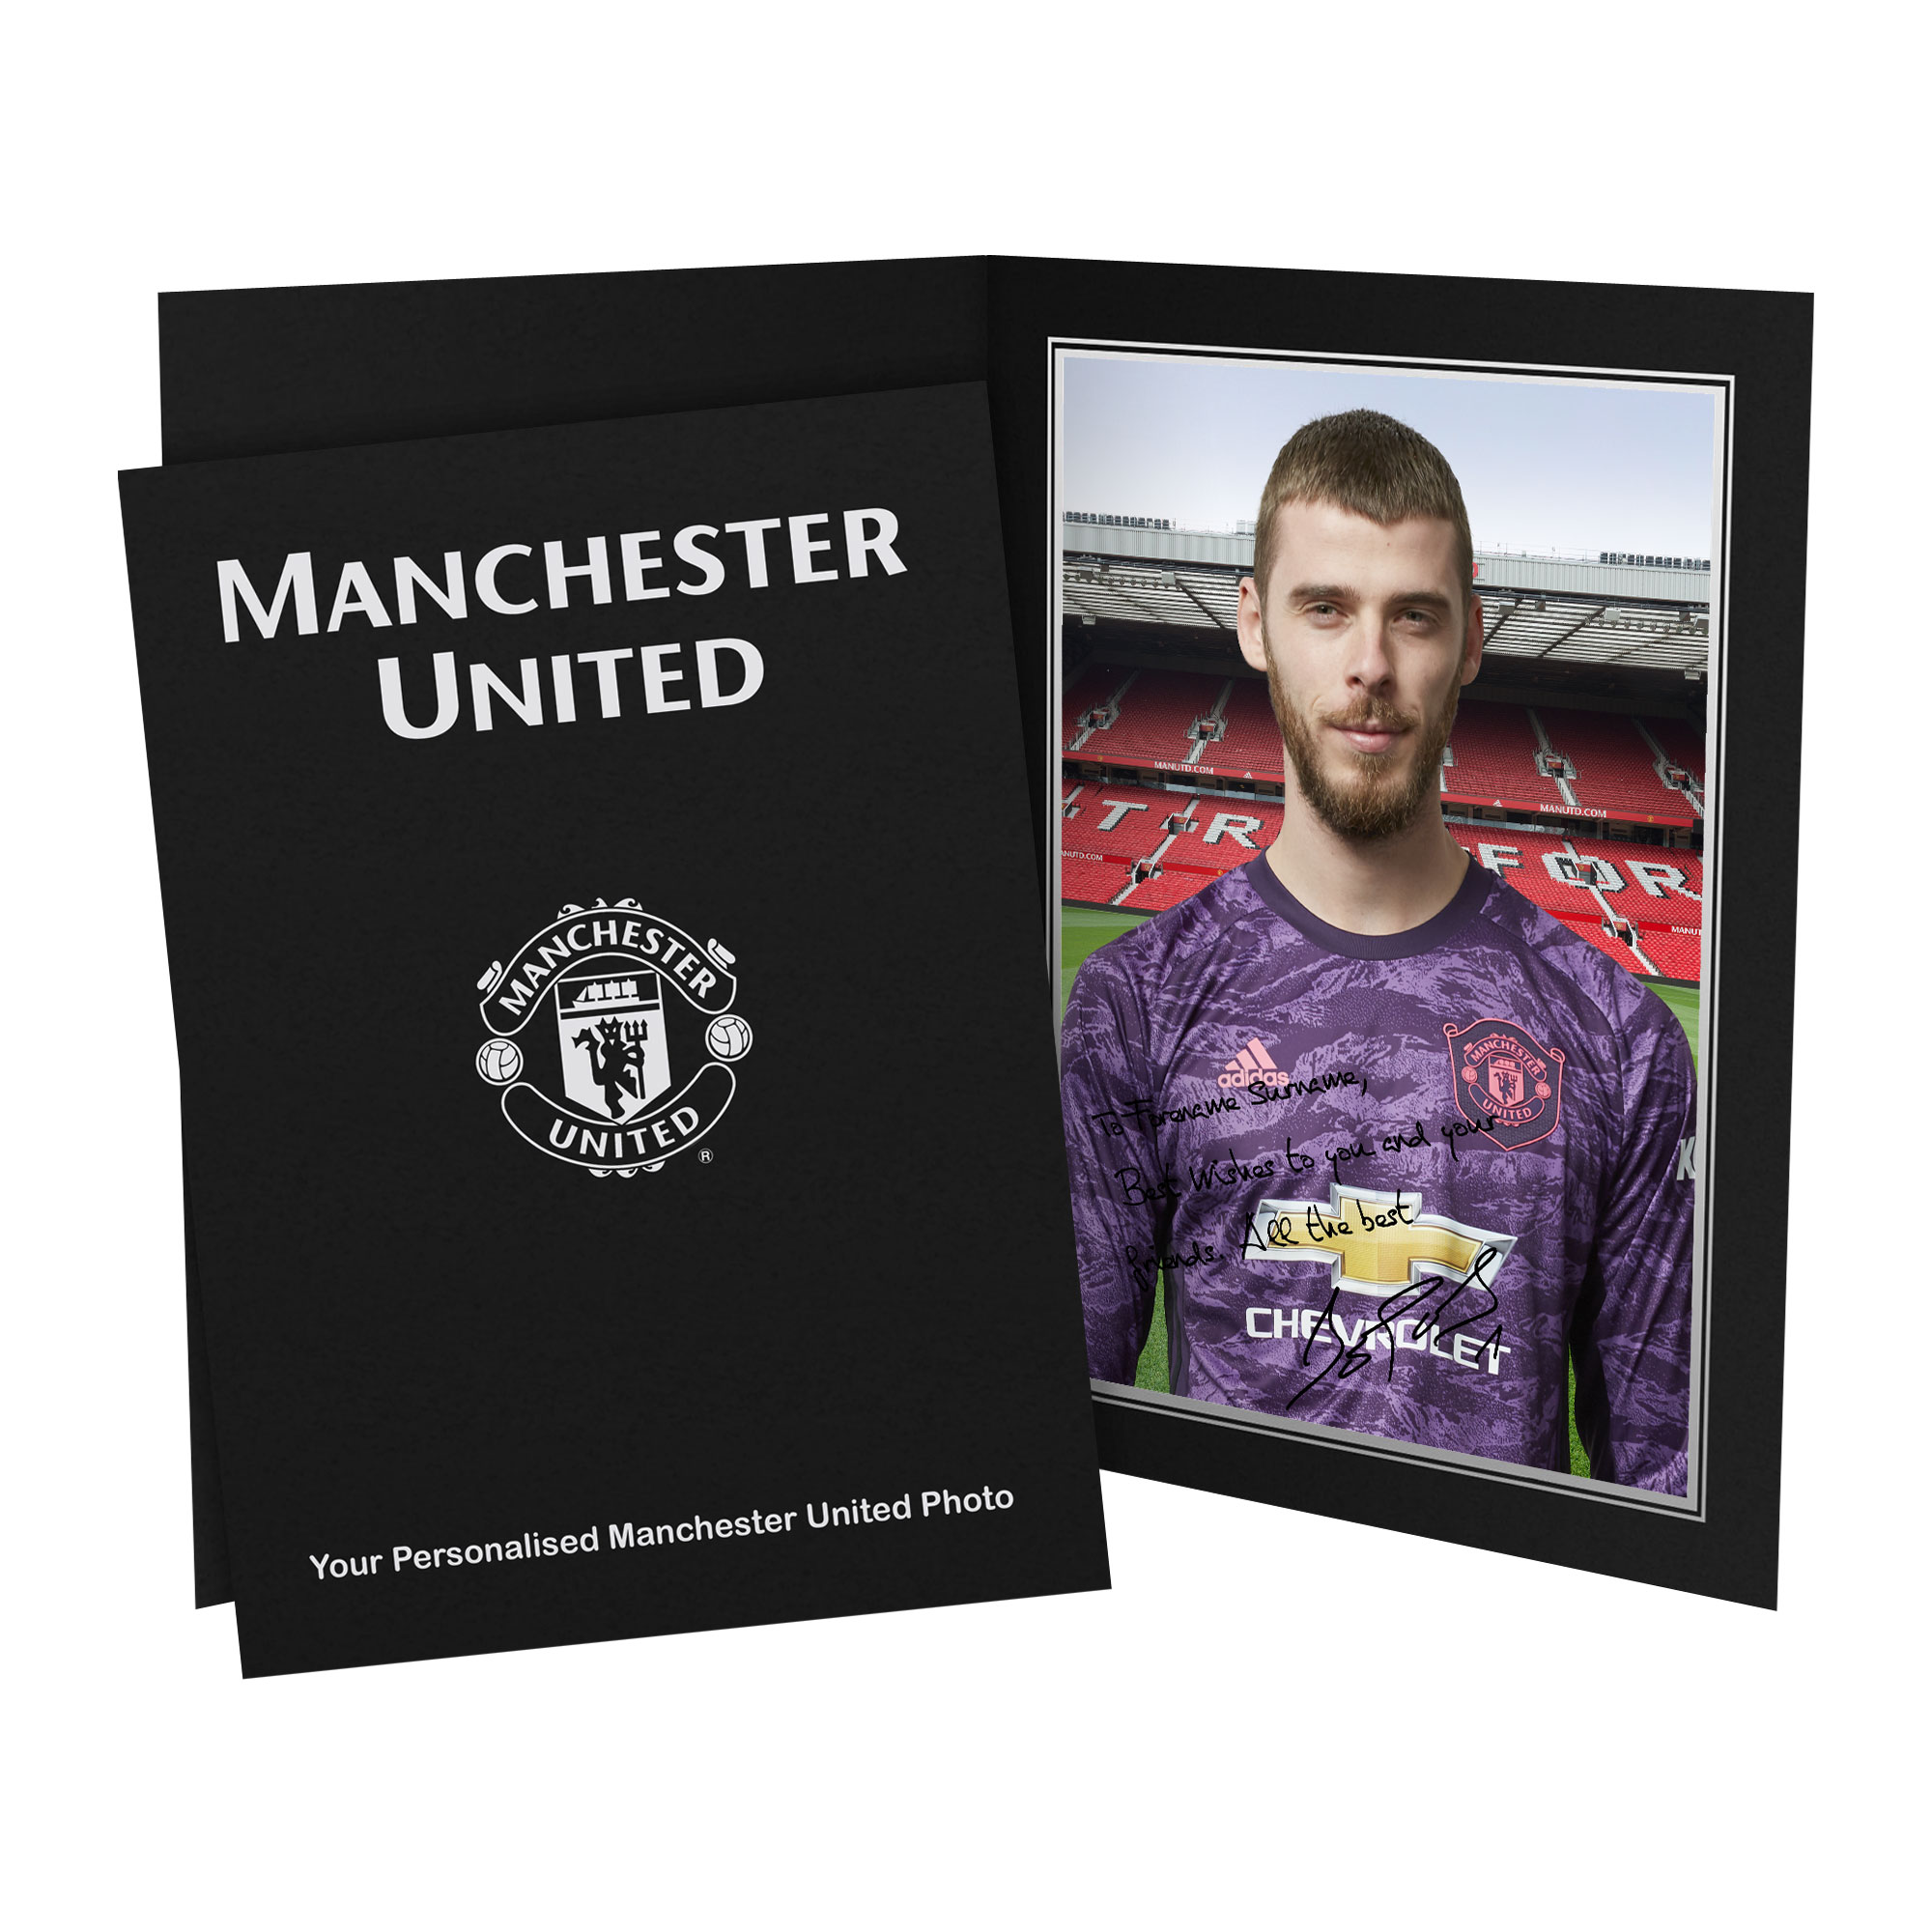 Manchester United Personalised Signature Photo In Presentation Folder - David De Gea